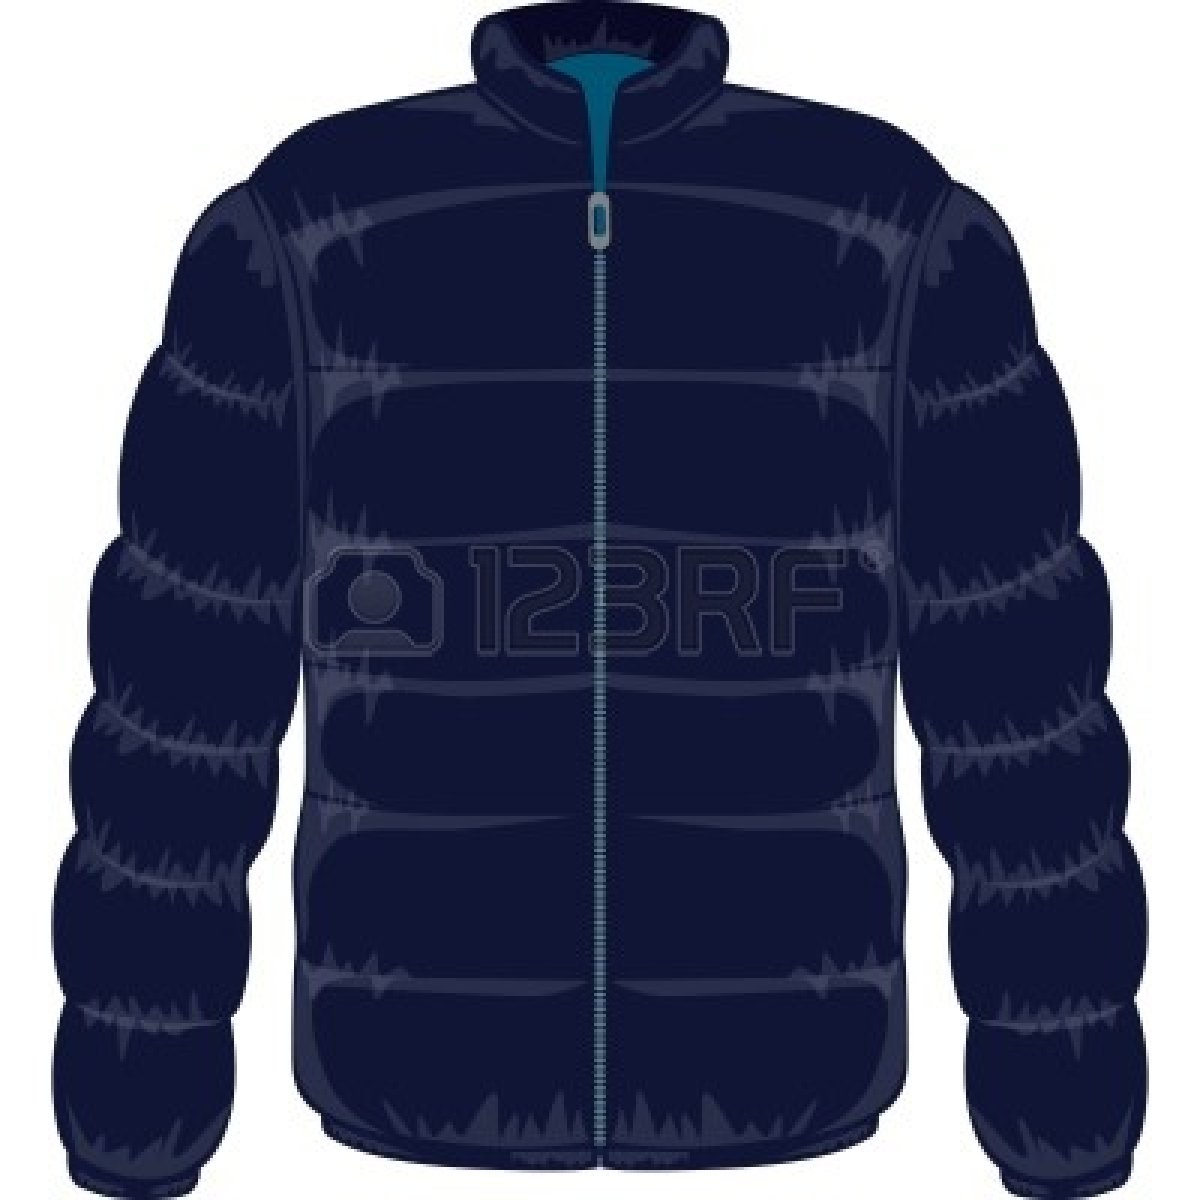 winter jacket clipart clipart panda free clipart images